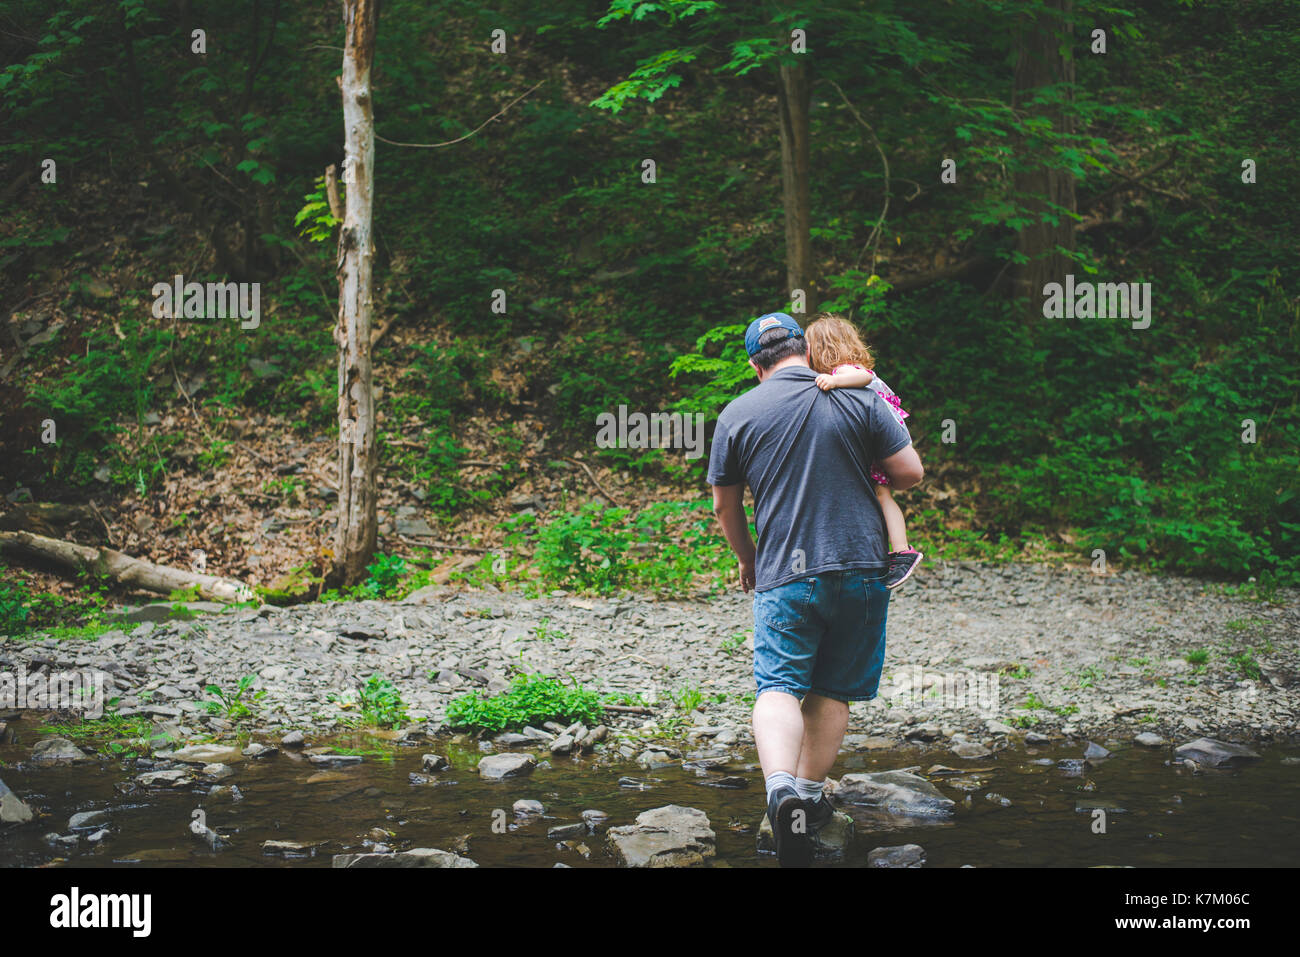 A father carries his daughter during a hike in the woods. Stock Photo